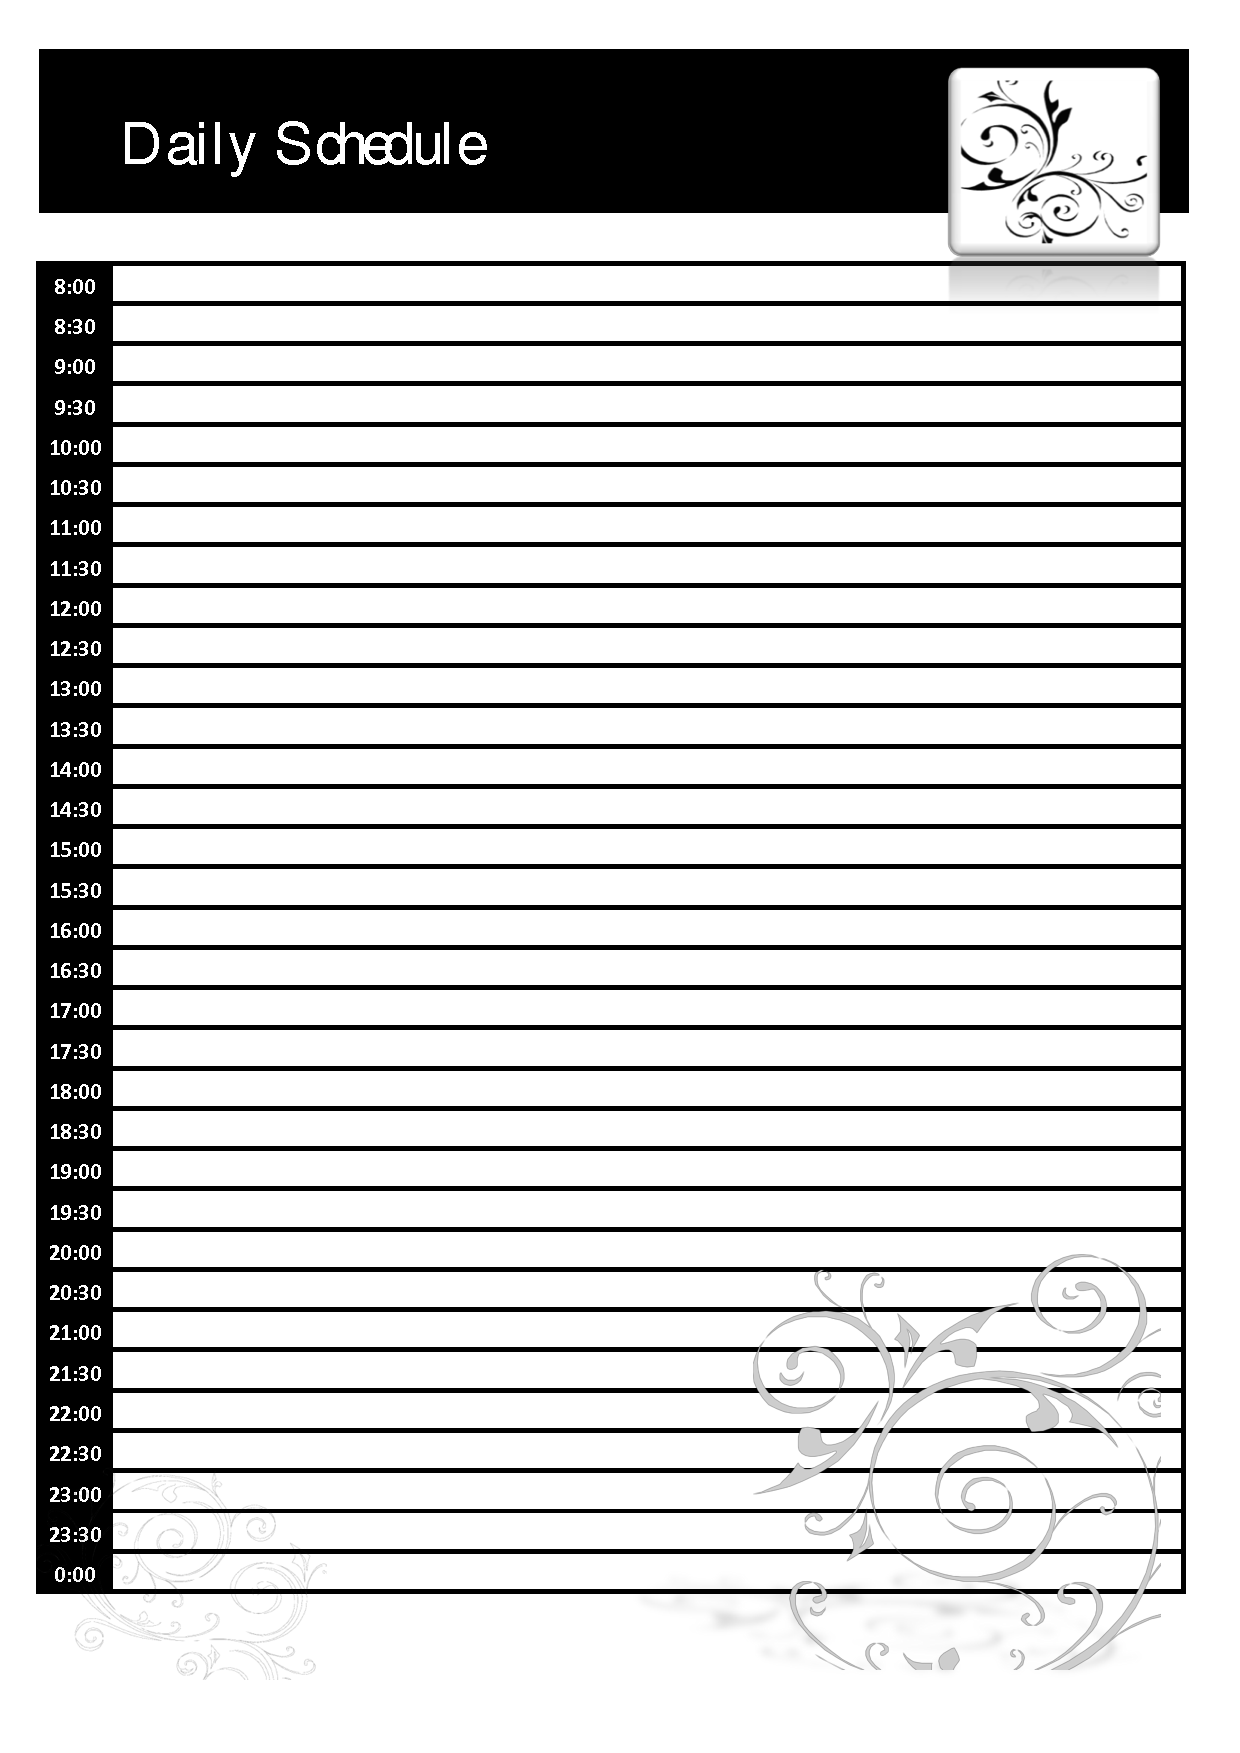 24 hour work schedule template free